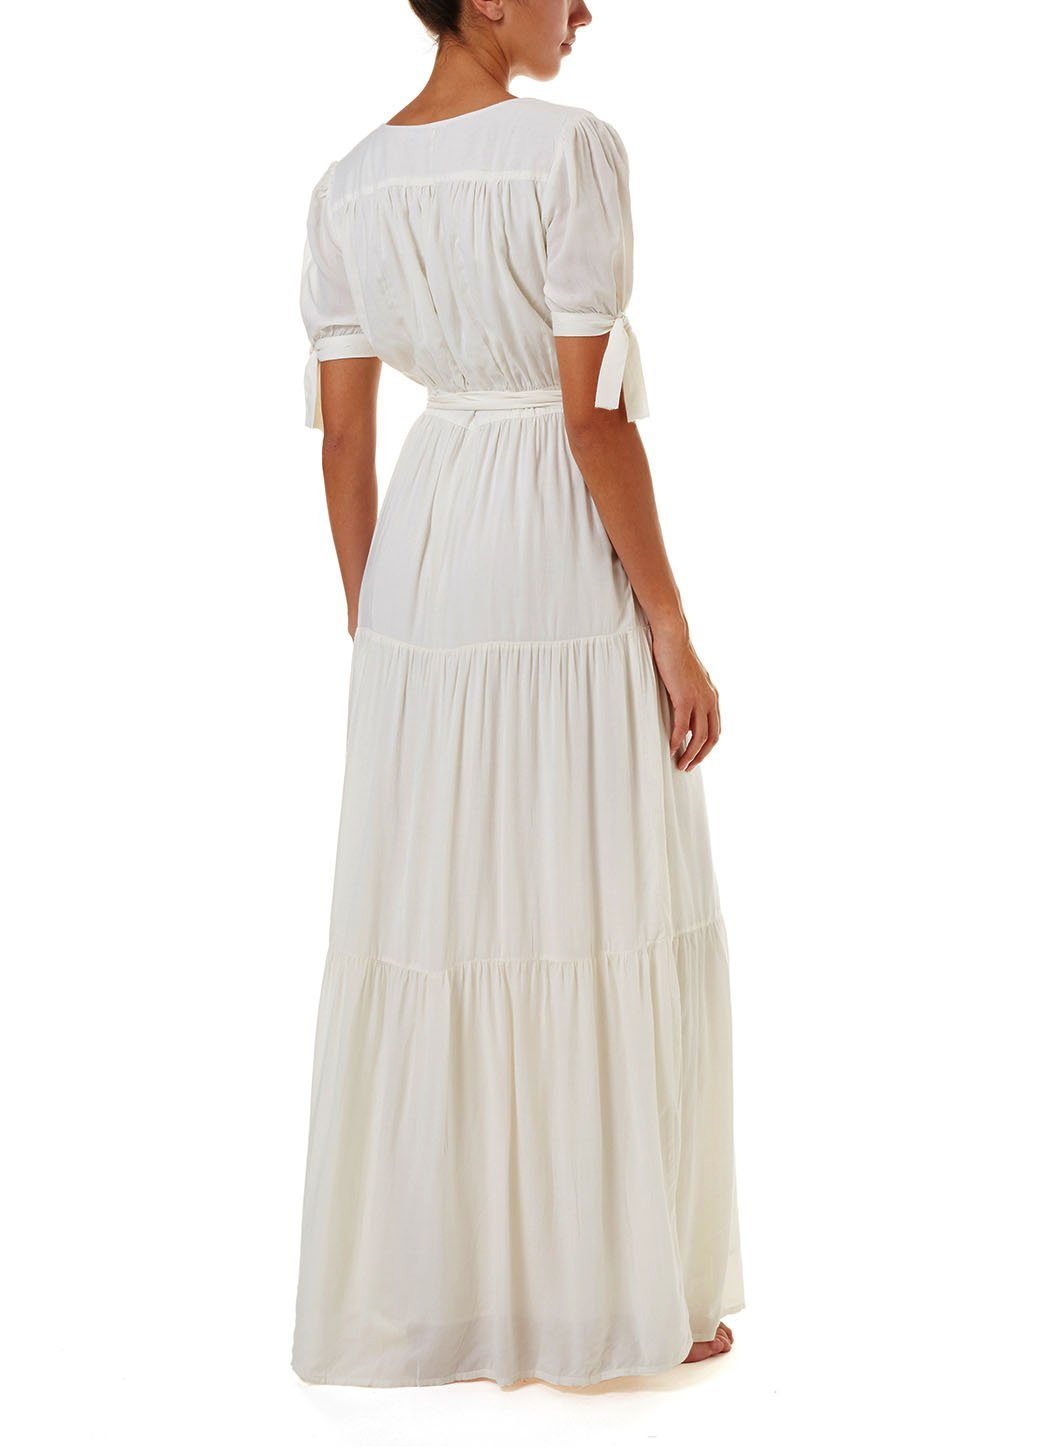 emily cream maxi wrap dress 2019 B